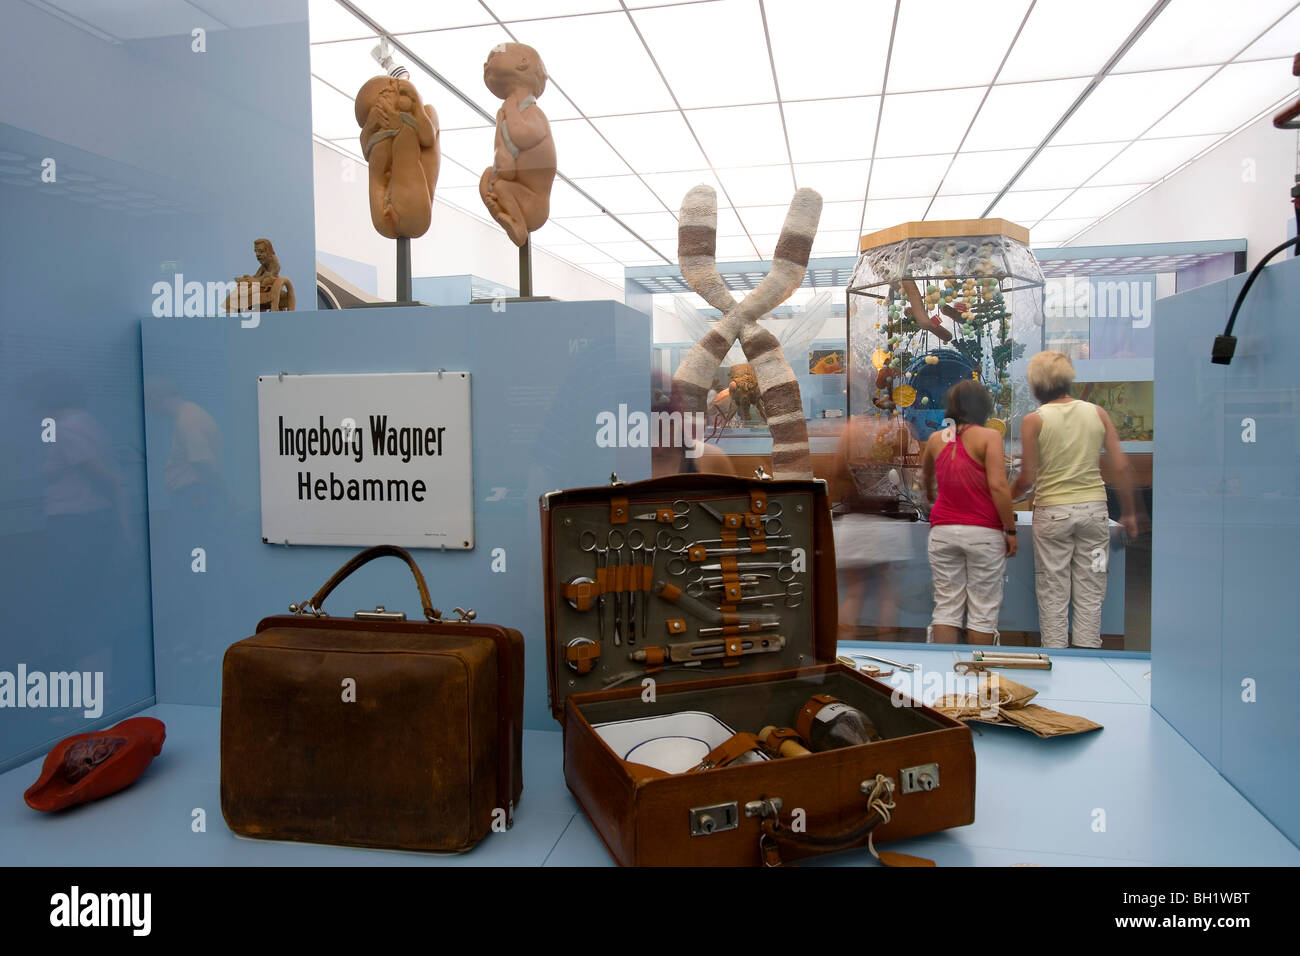 Das Deutsche Hygiene Museum, DHMD, Room 2 Living and Dying, Dresden, Saxony, Germany, Europe - Stock Image